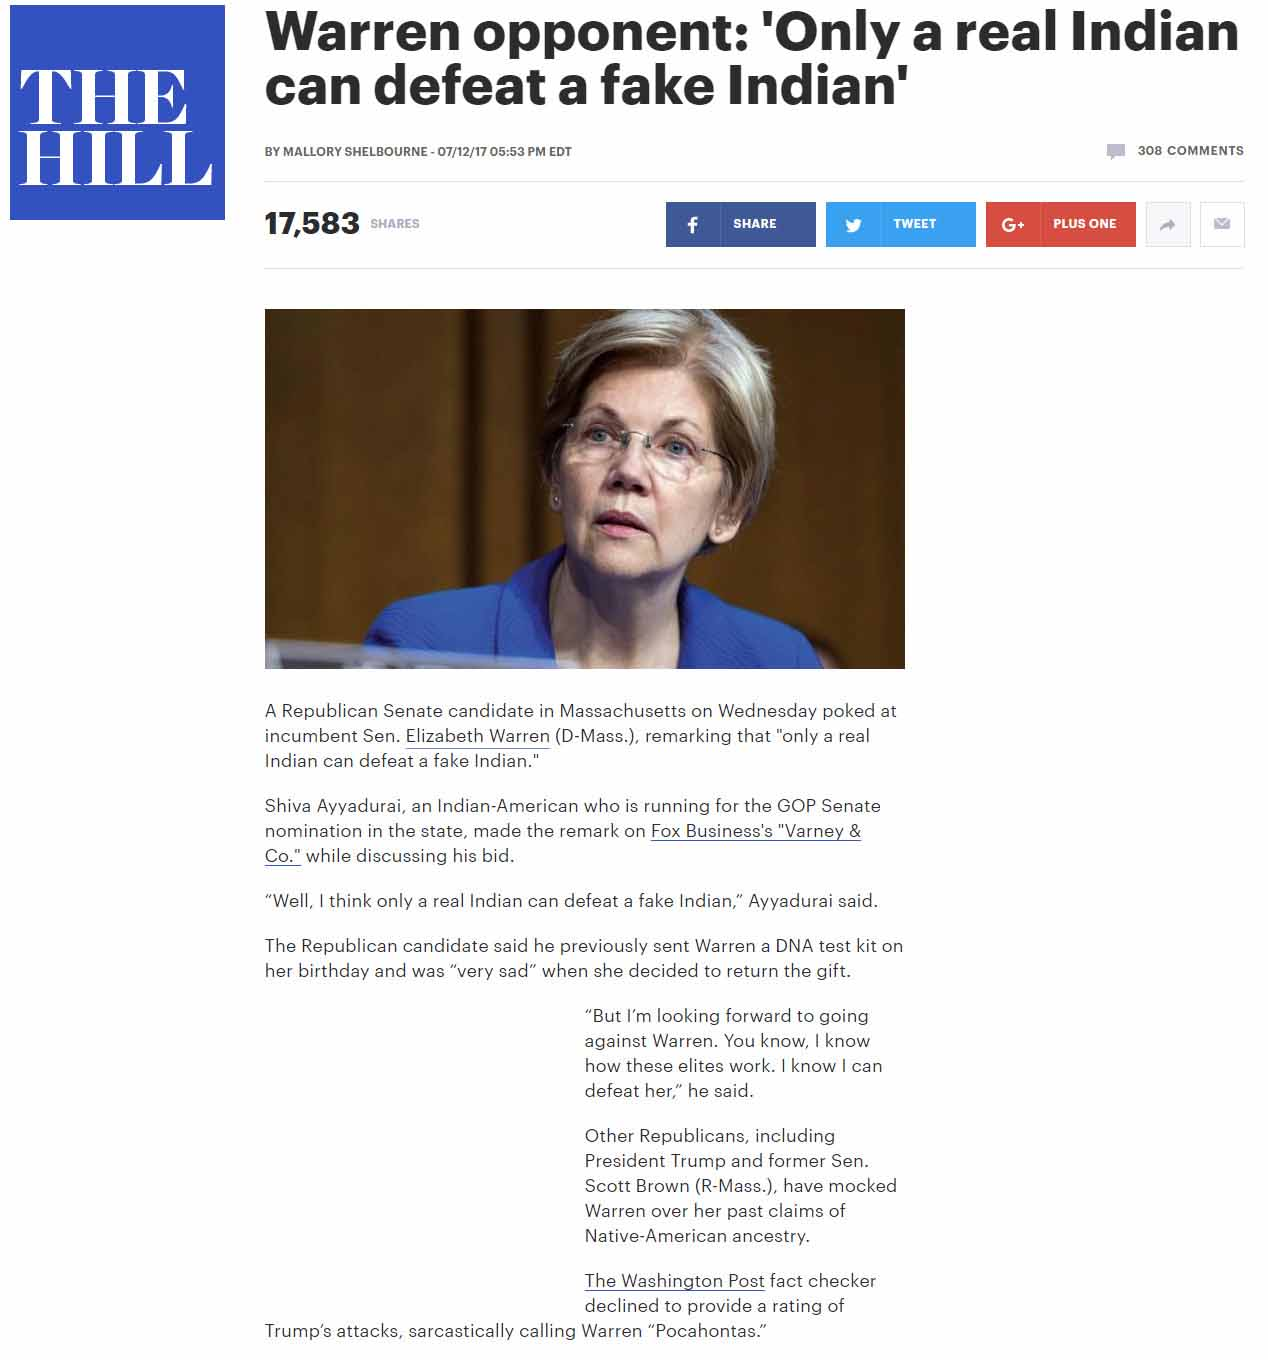 Warren Opponent: 'Only A Real Indian Can Defeat A Fake Indian'